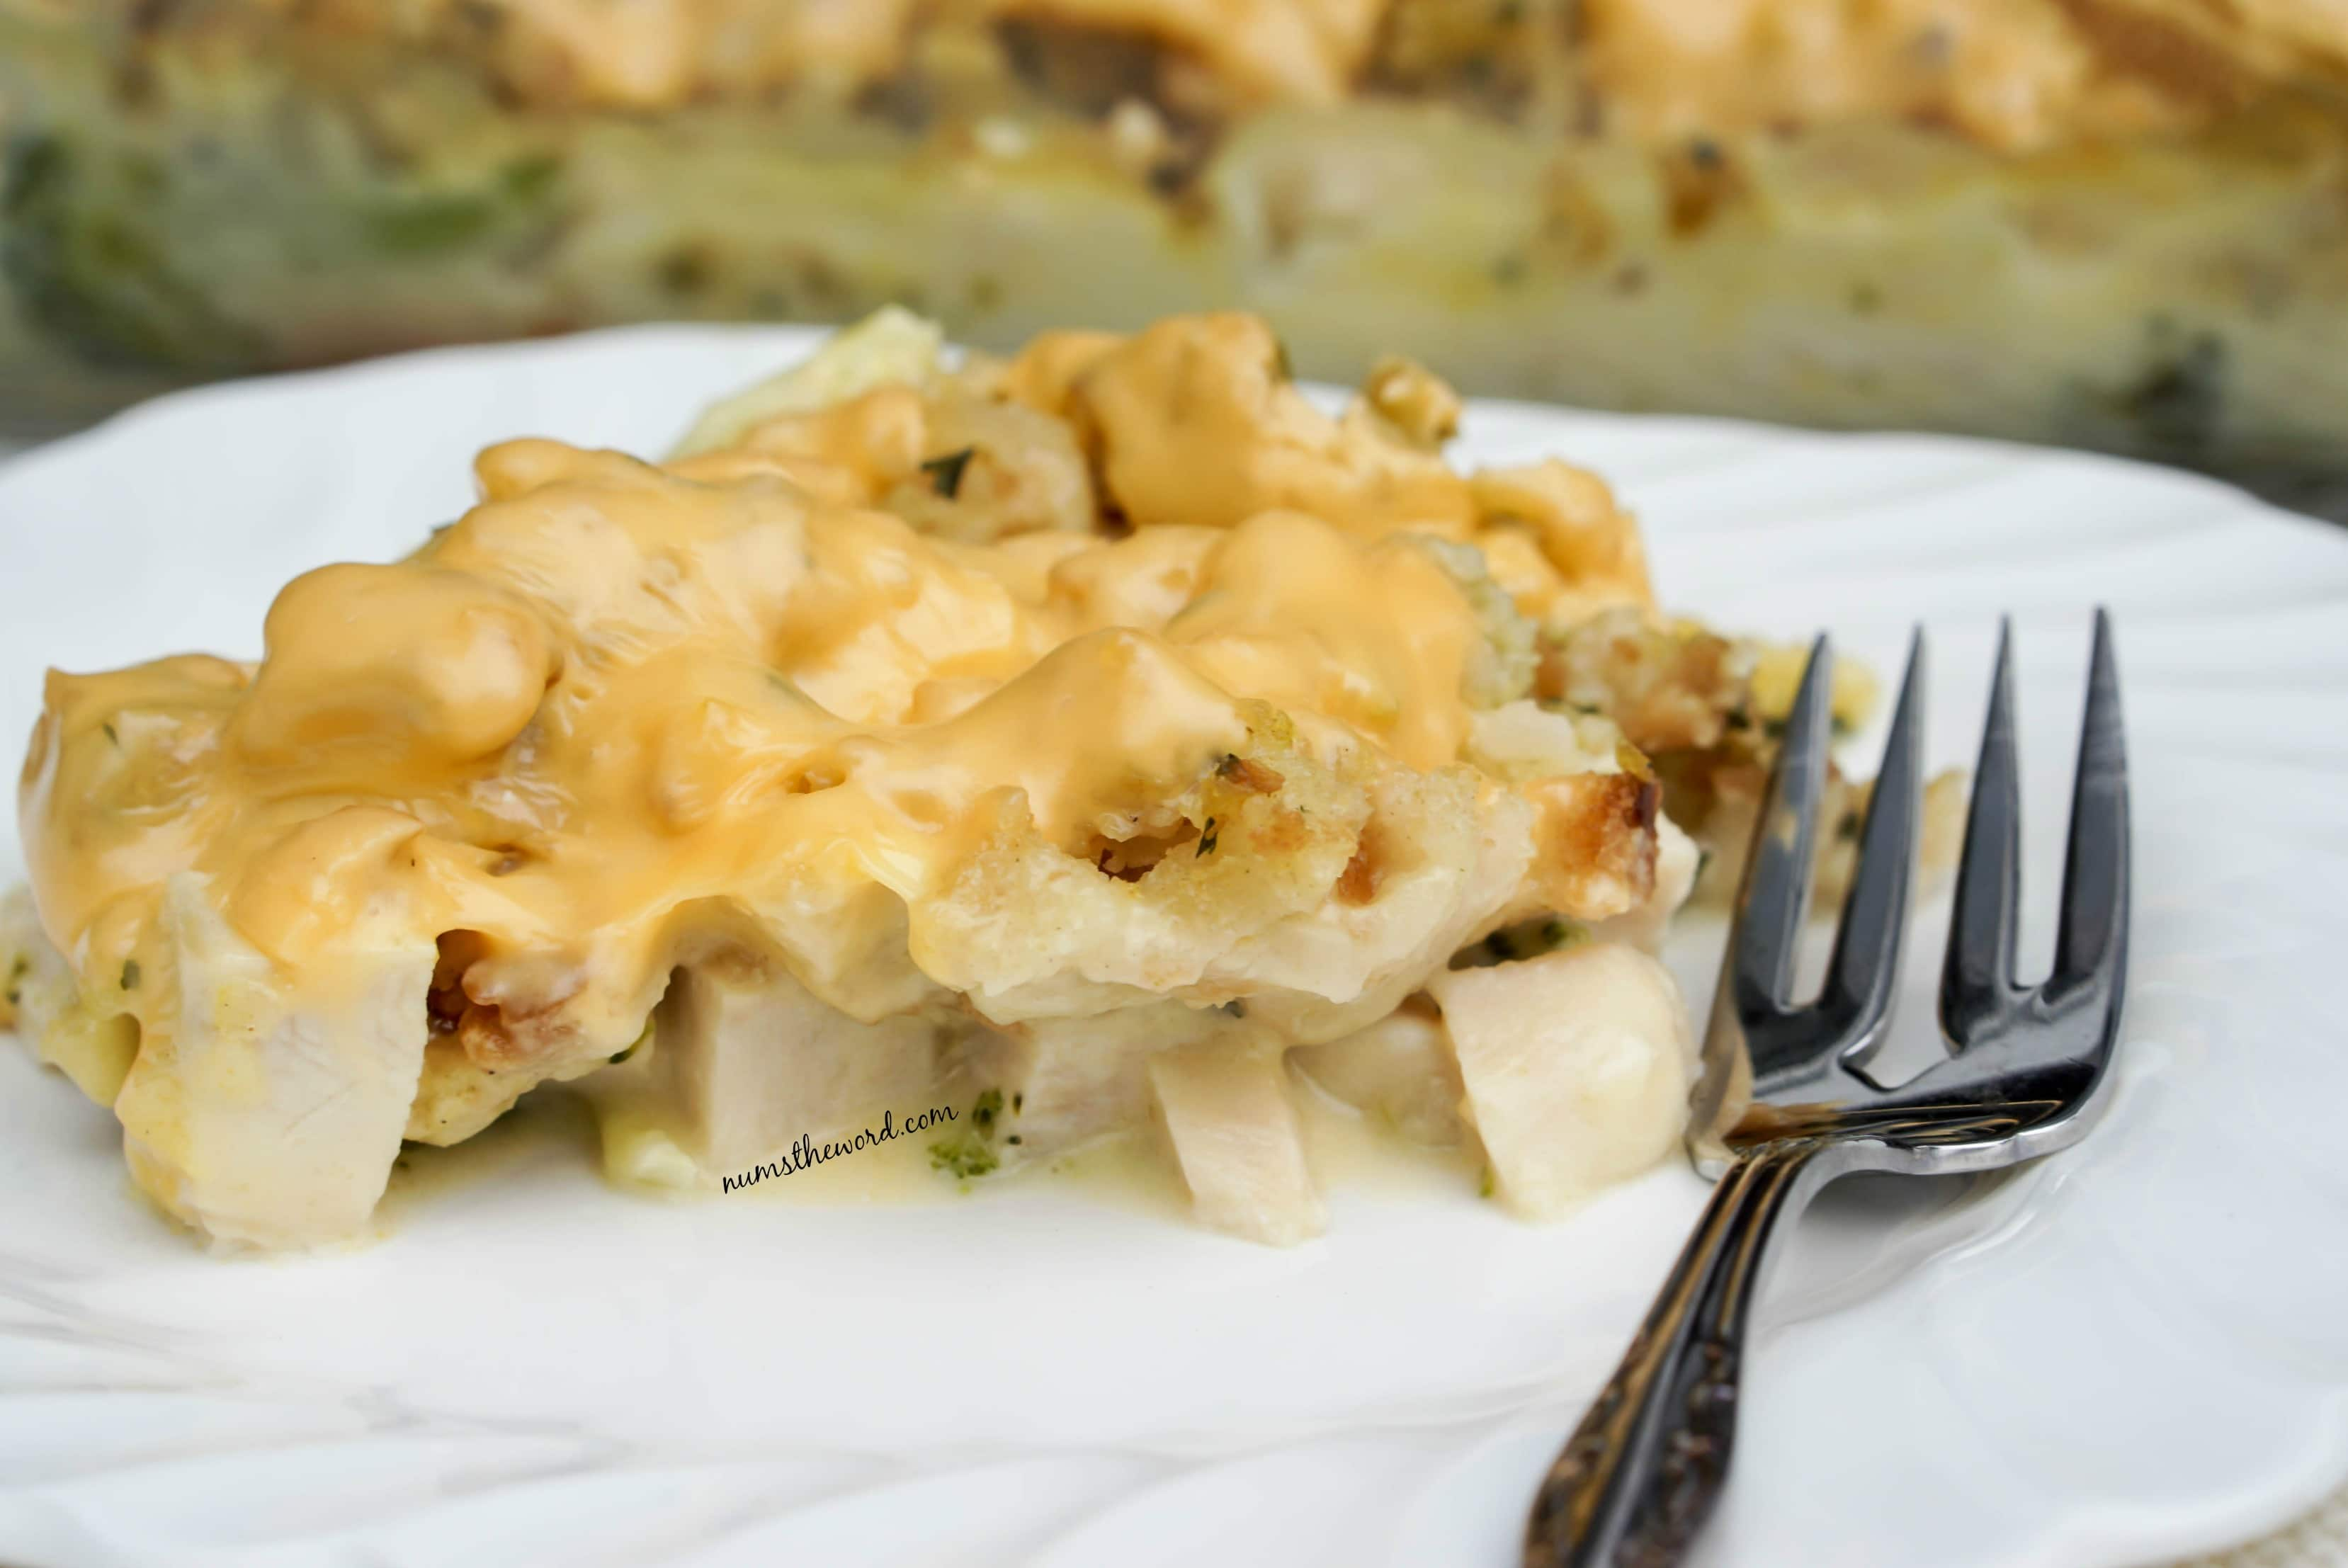 Turkey, Broccoli & Stuffing Casserole